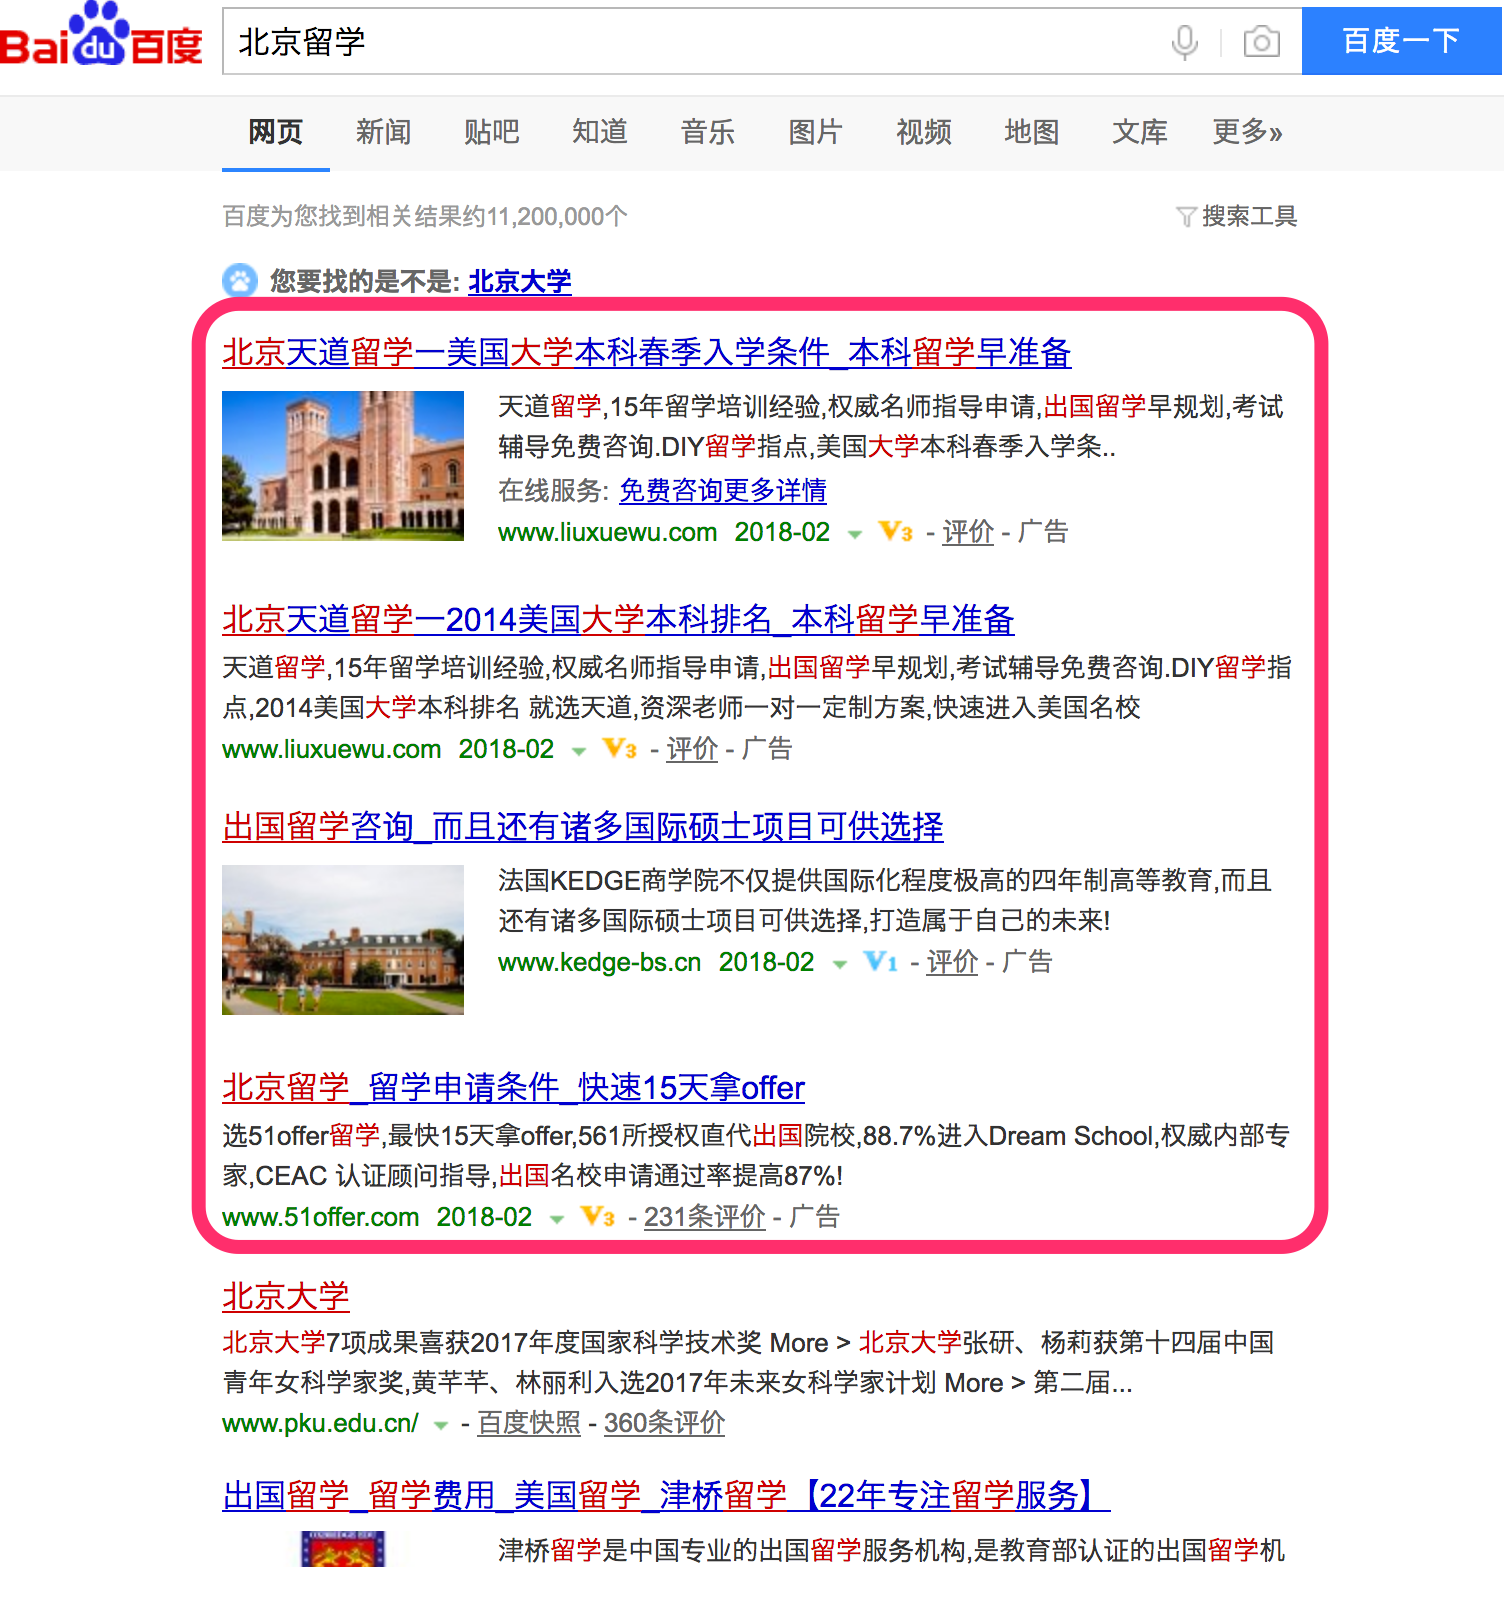 how Baidu displays your ppc ads